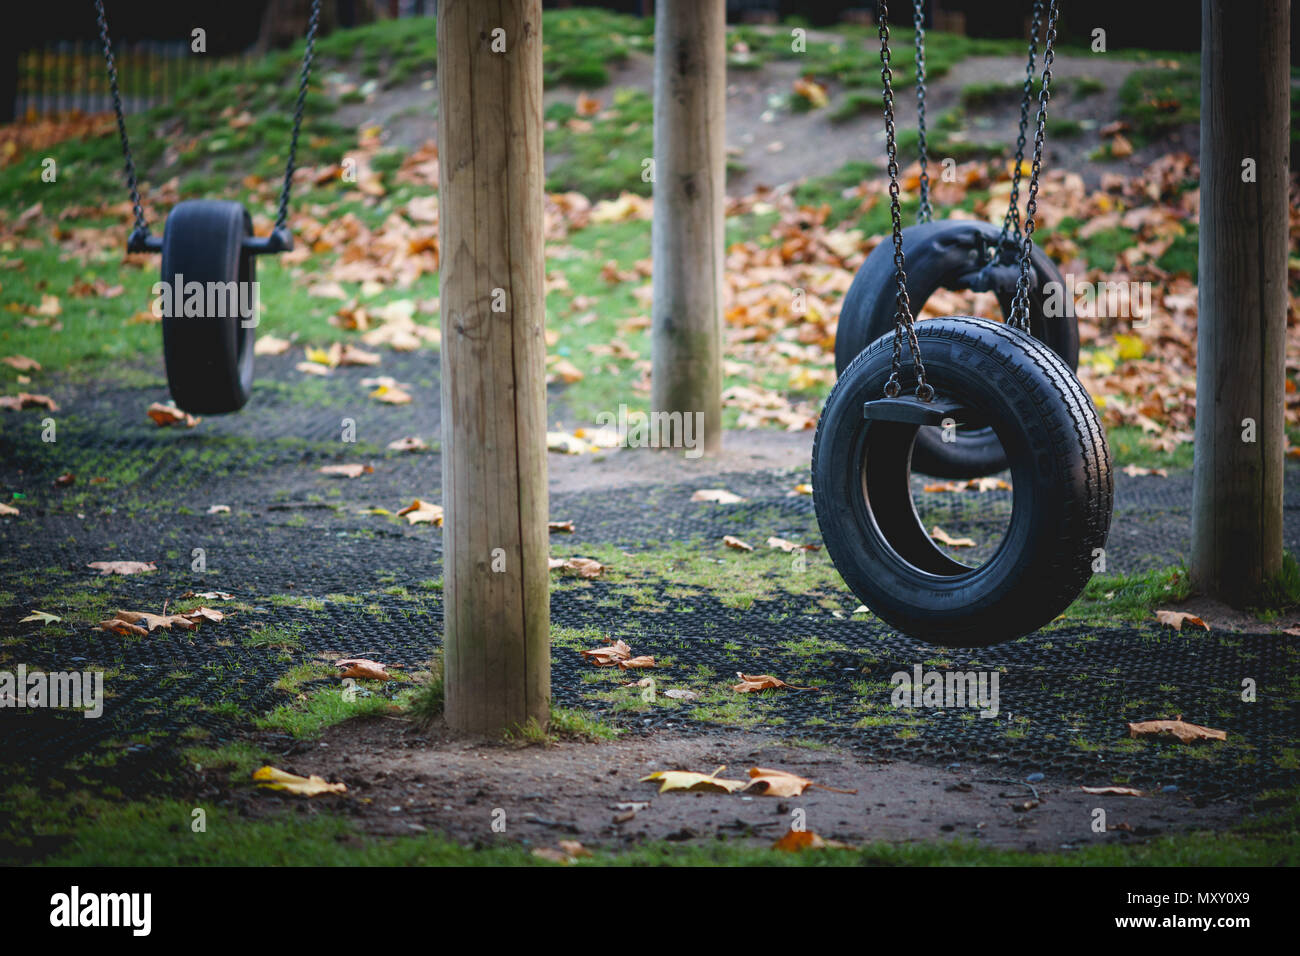 London, UK - October 2017. Empty tyre swings in the playground of Hilly Fields Park at Fall. The park is situated in Lewisham. - Stock Image